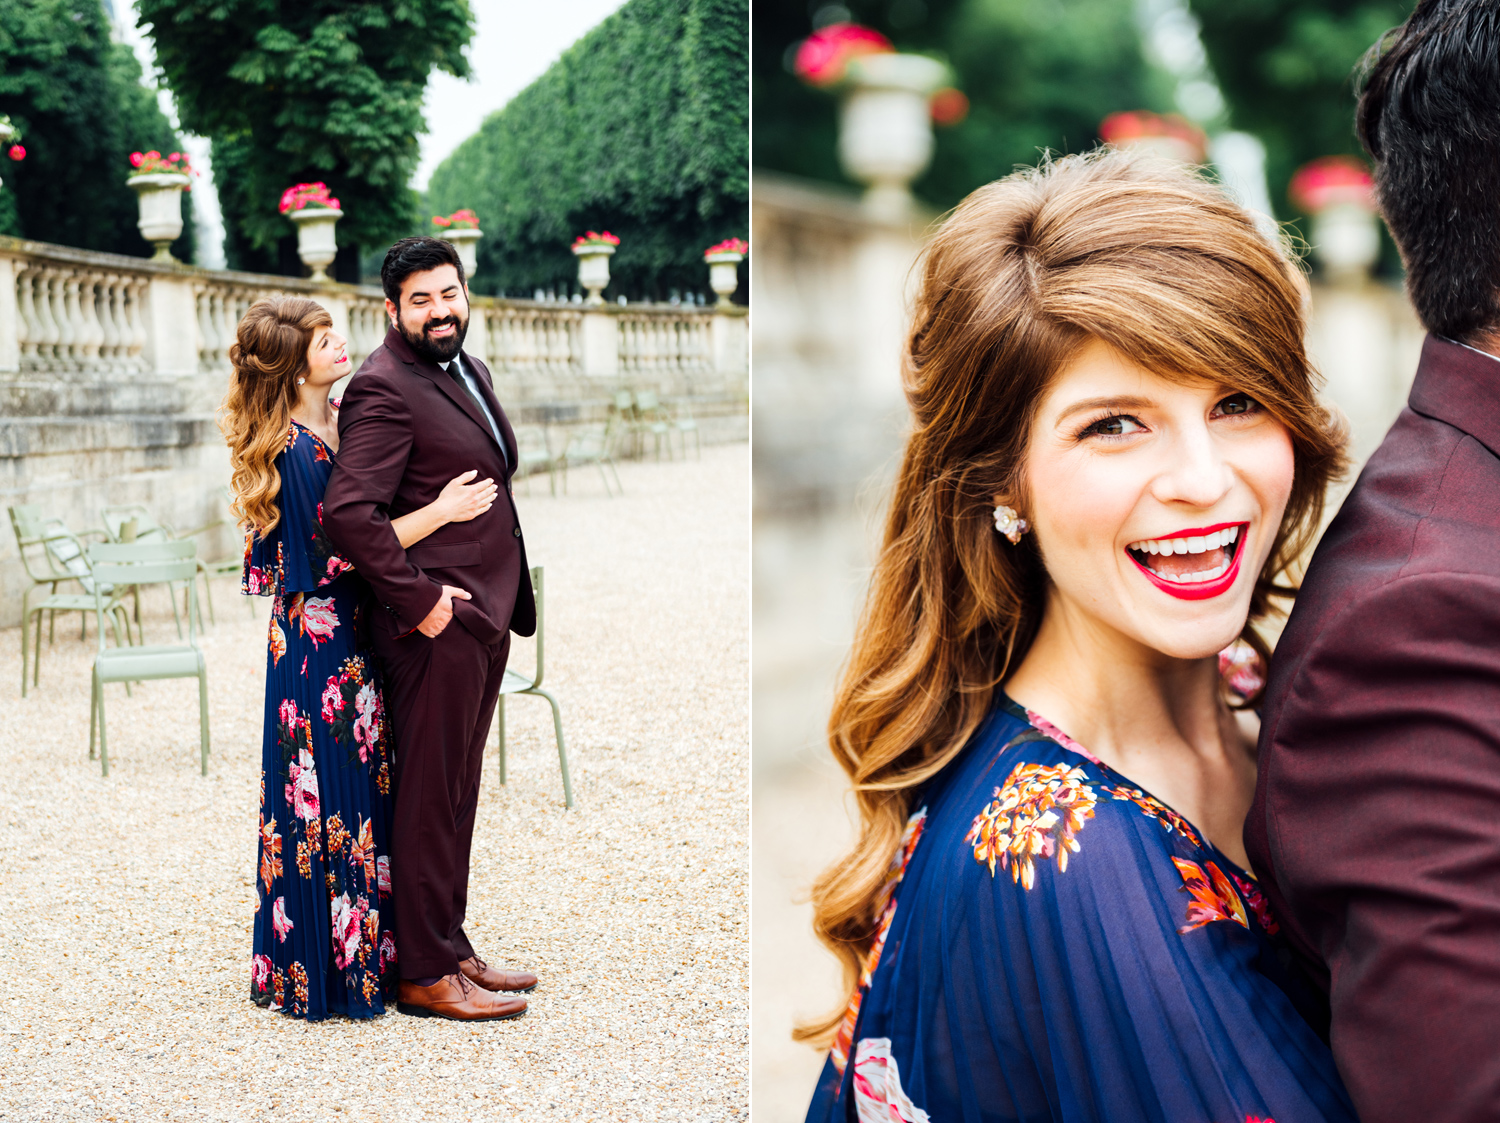 002-katie-mitchell-photography-paris-wedding-elopement-engagement-honeymoon-anniversary-photographer-france.jpg